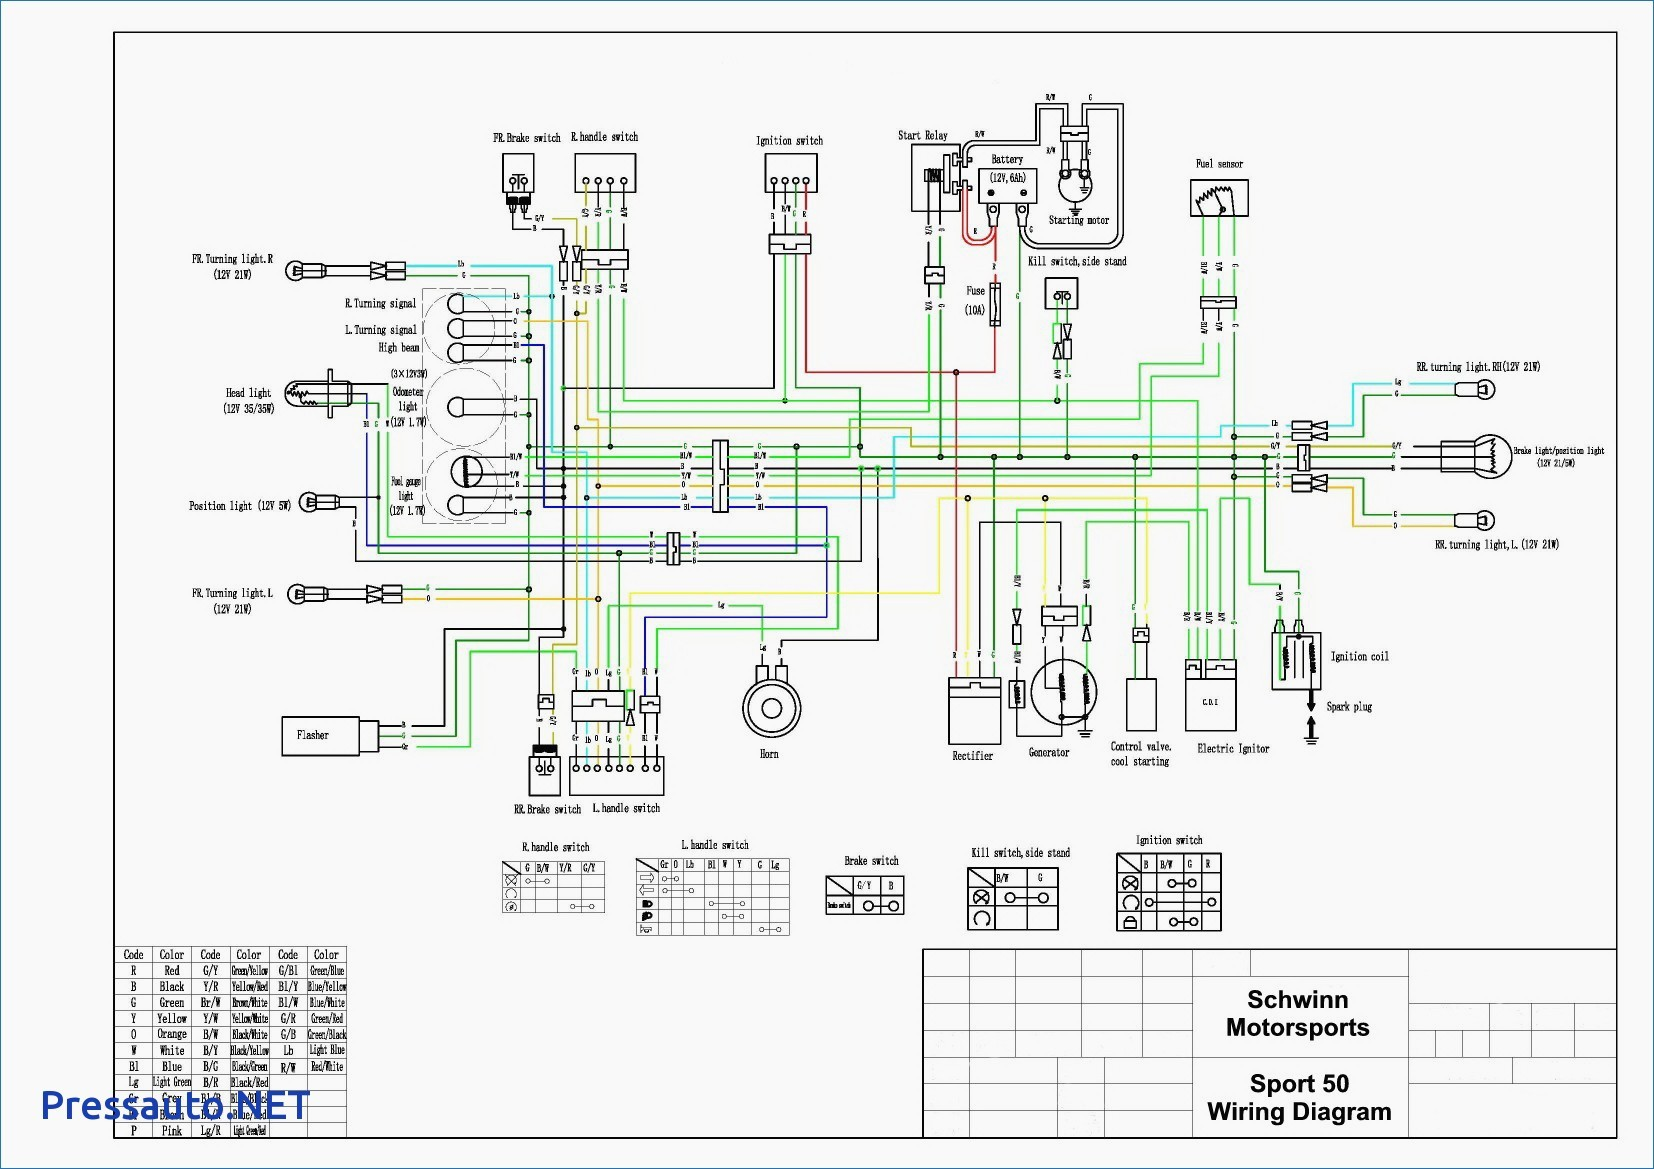 hight resolution of taotao wiring diagrams 50cc wiring diagram world taotao 49cc scooter wiring diagram tao tao moped wiring diagram